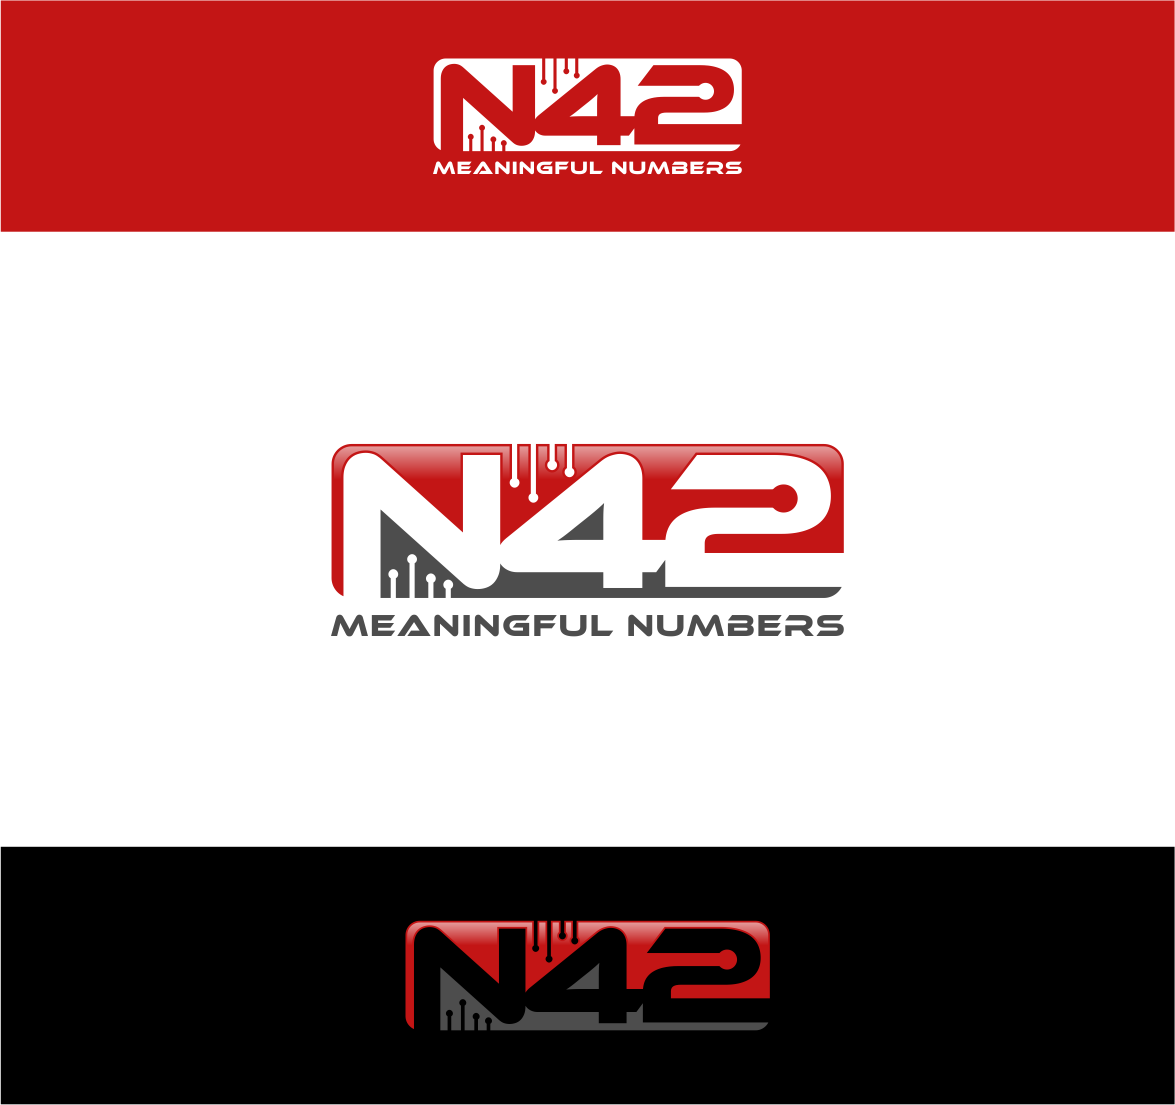 Logo Design by haidu - Entry No. 175 in the Logo Design Contest Artistic Logo Design for Number 42.